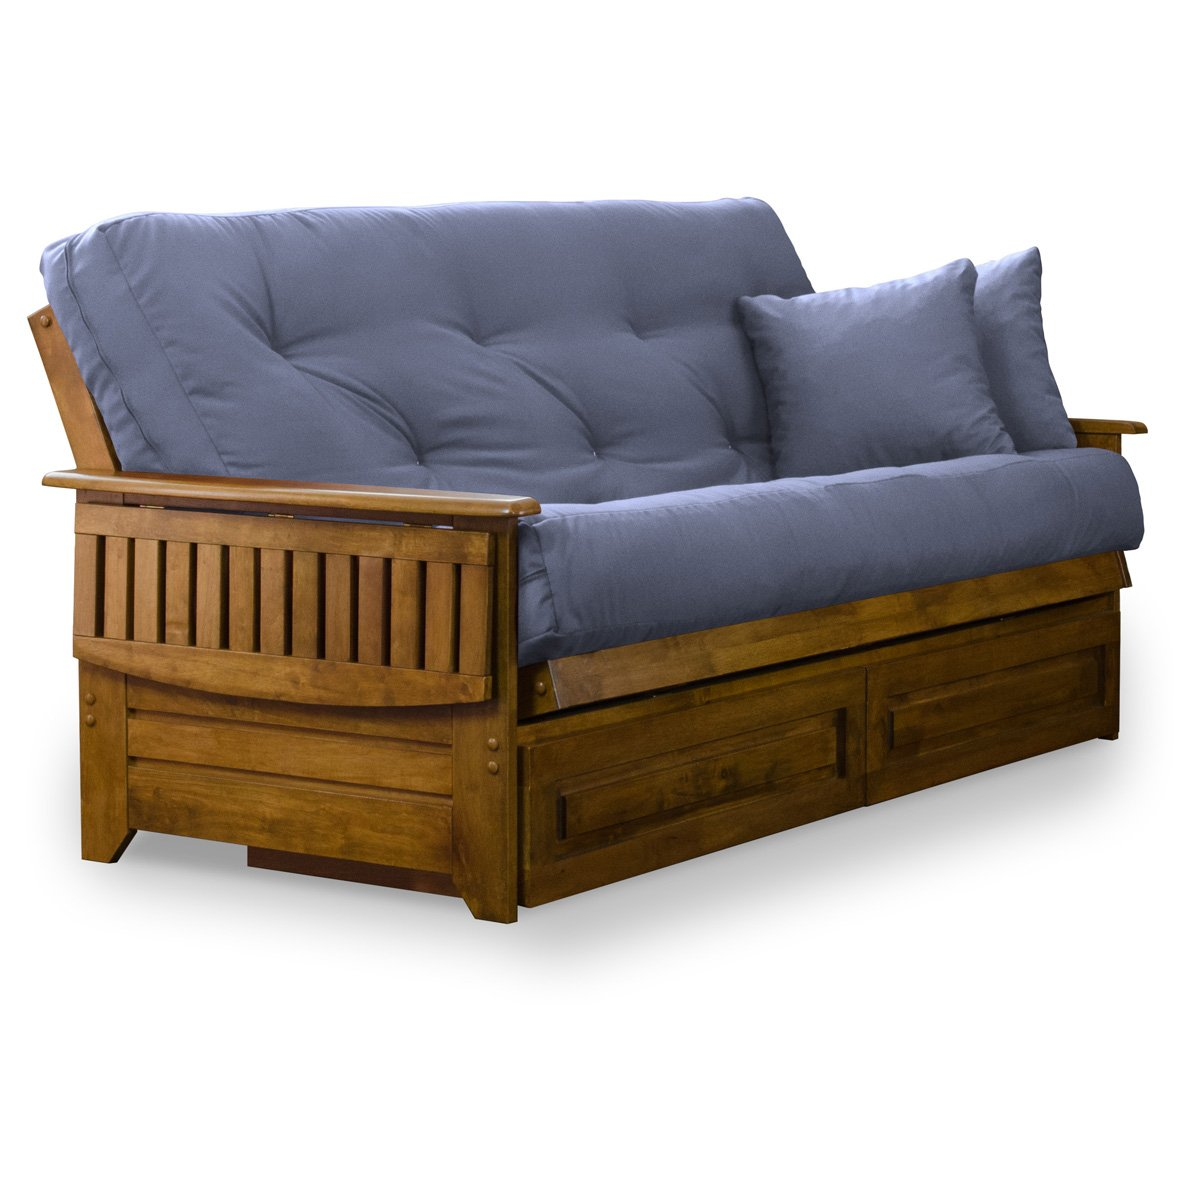 brentwood tray arm full size wood futon frame and storage drawers   heritage finish futon frames   amazon    rh   amazon